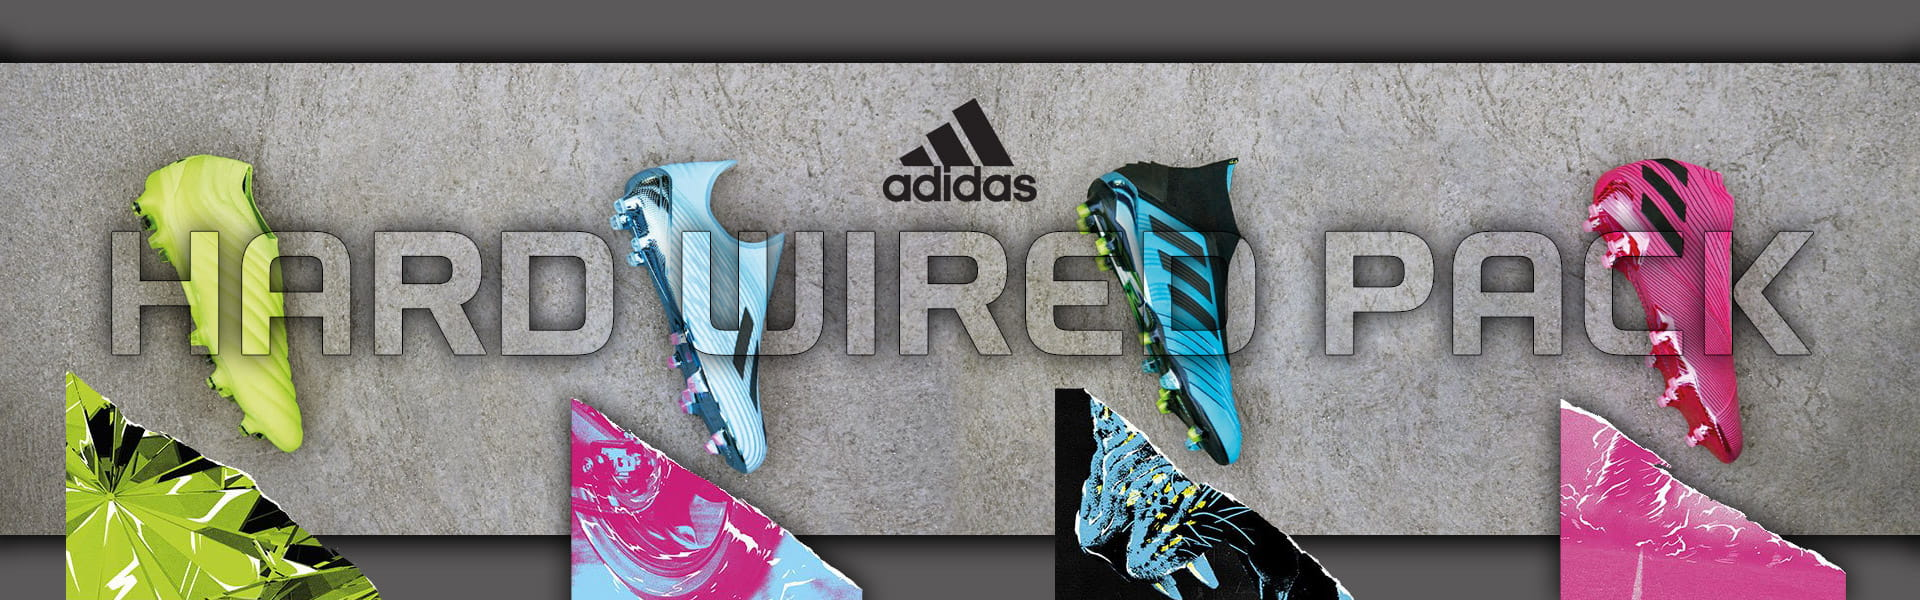 ADIDAS Hard Wired Pack